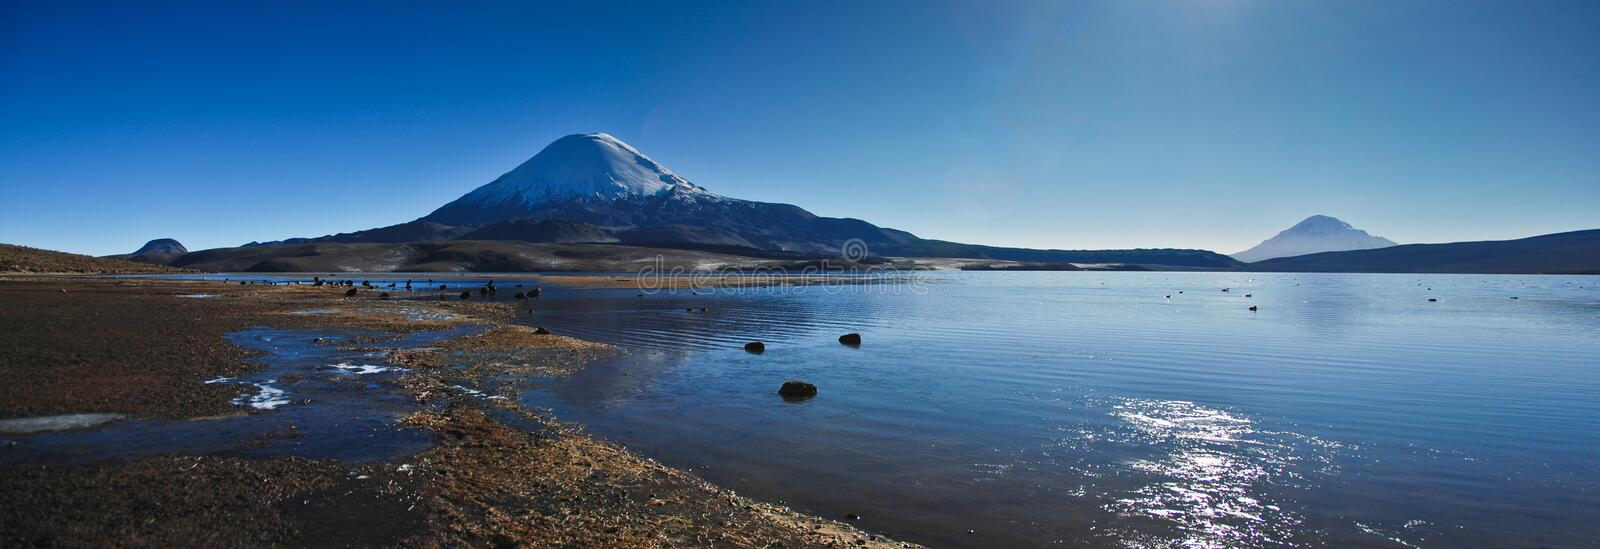 Volcano above a lake stock photo